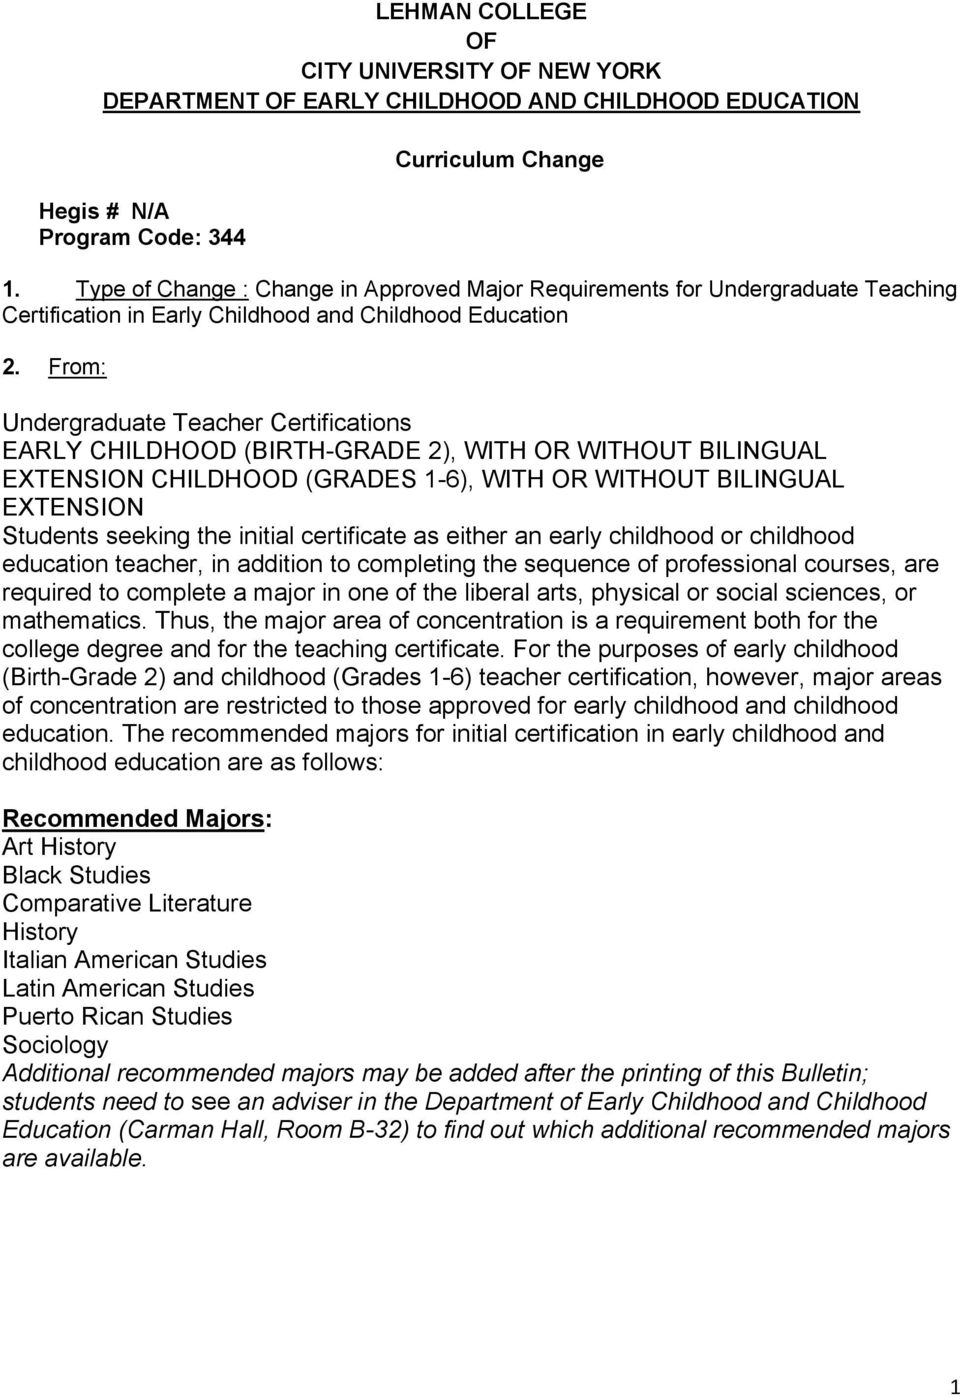 From: Undergraduate Teacher Certifications EARLY CHILDHOOD (BIRTH-GRADE 2), WITH OR WITHOUT BILINGUAL EXTENSION CHILDHOOD (GRADES 1-6), WITH OR WITHOUT BILINGUAL EXTENSION Students seeking the